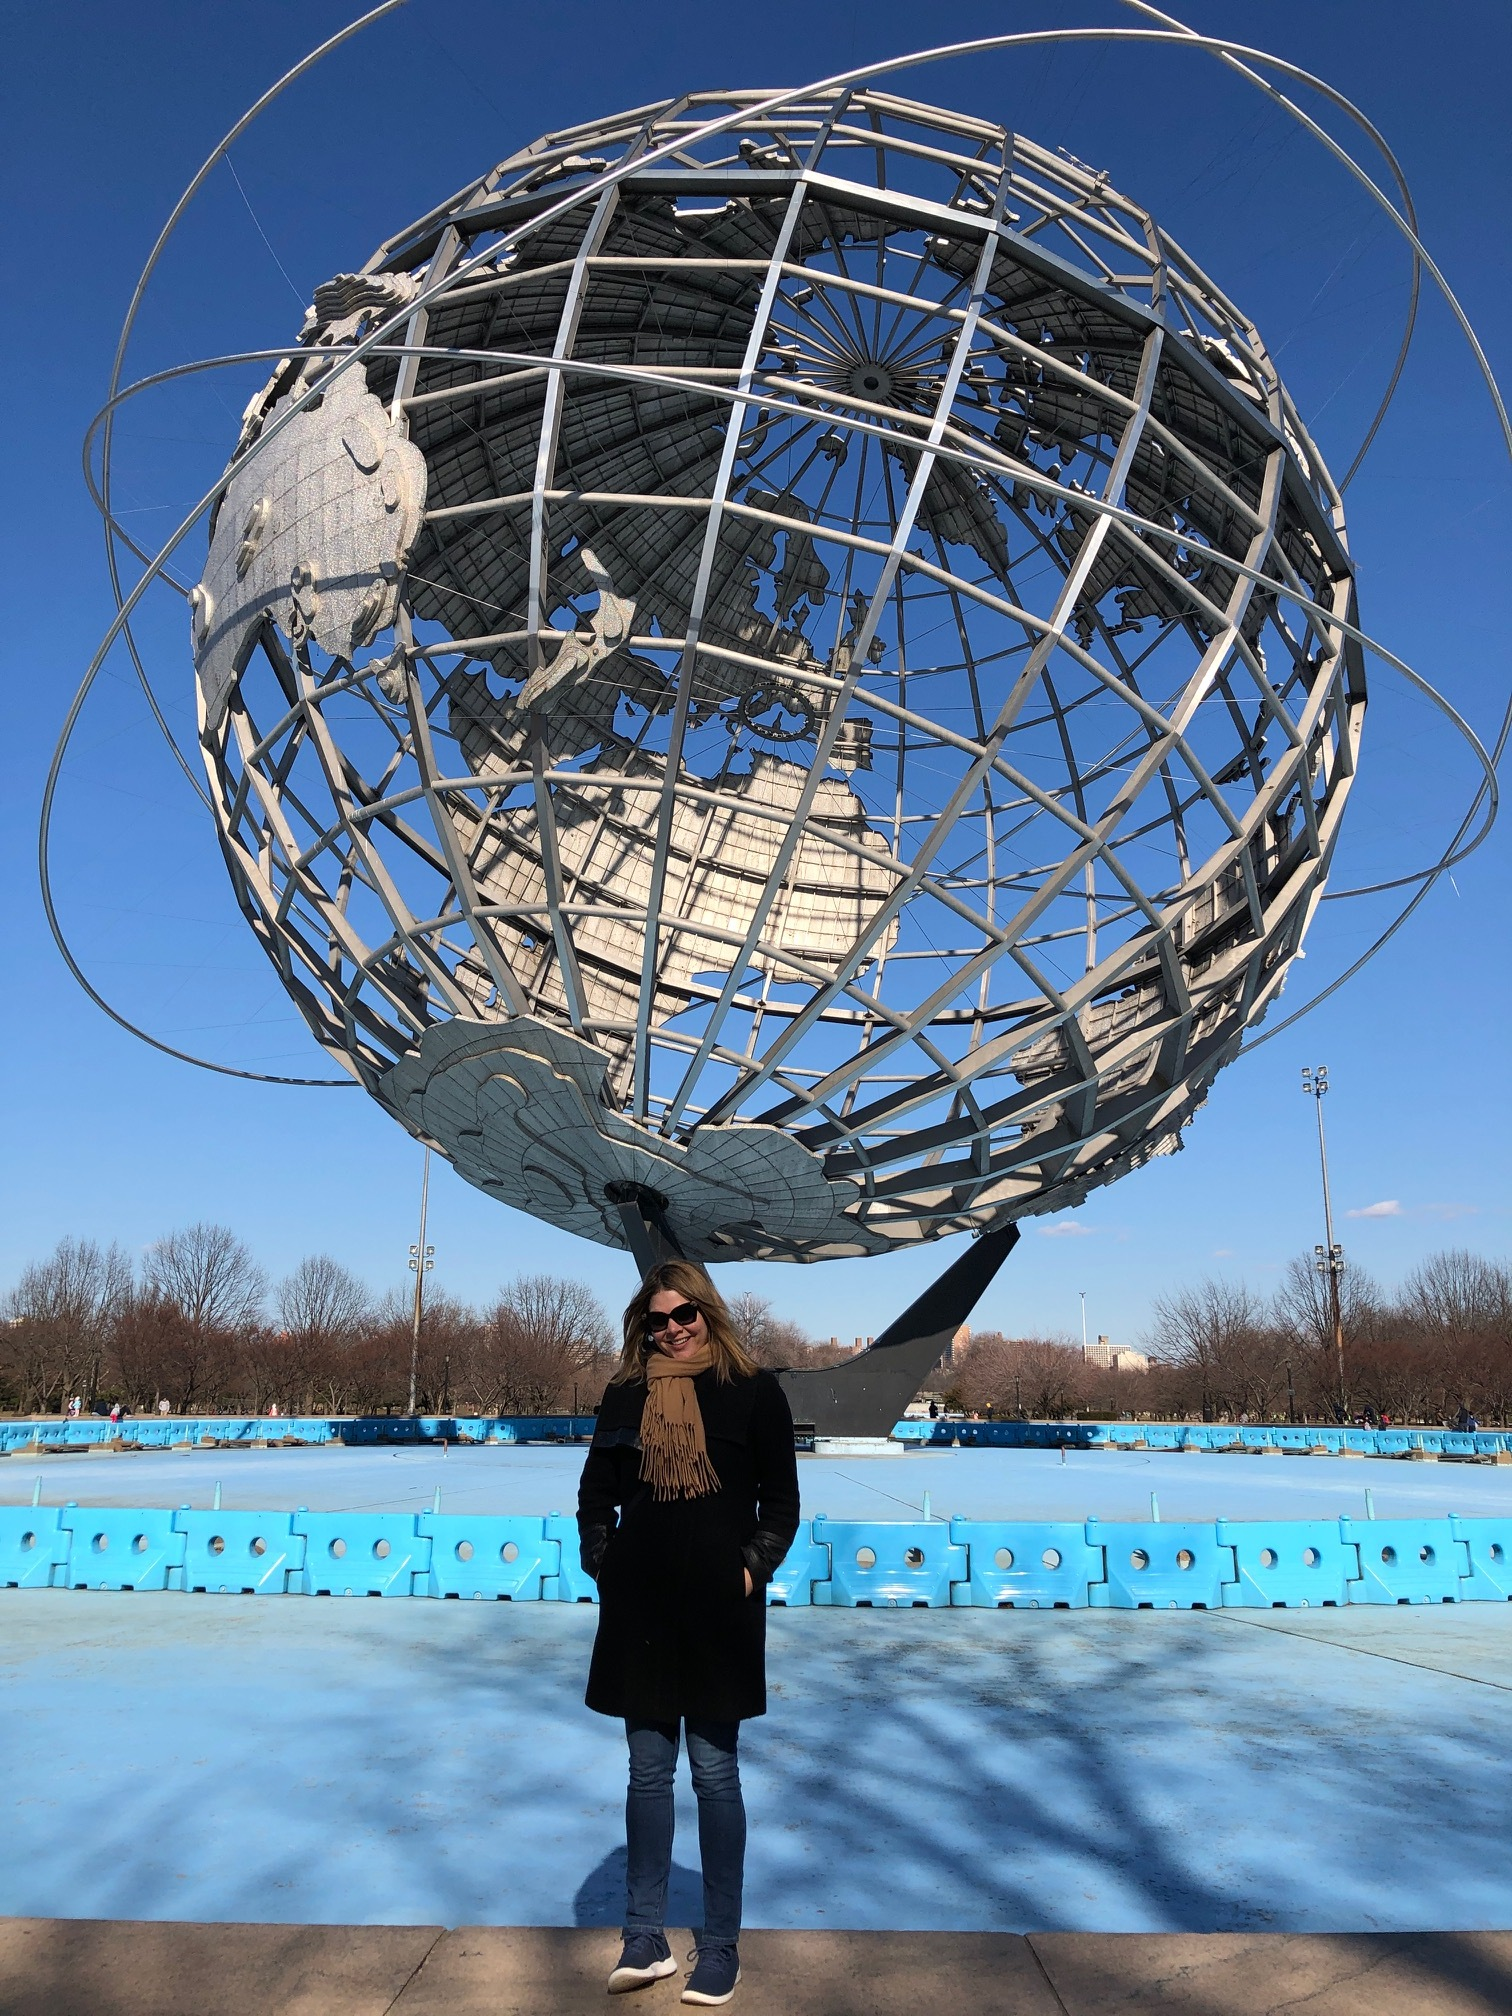 The Unisphere, built for the 1964 World's Fair.